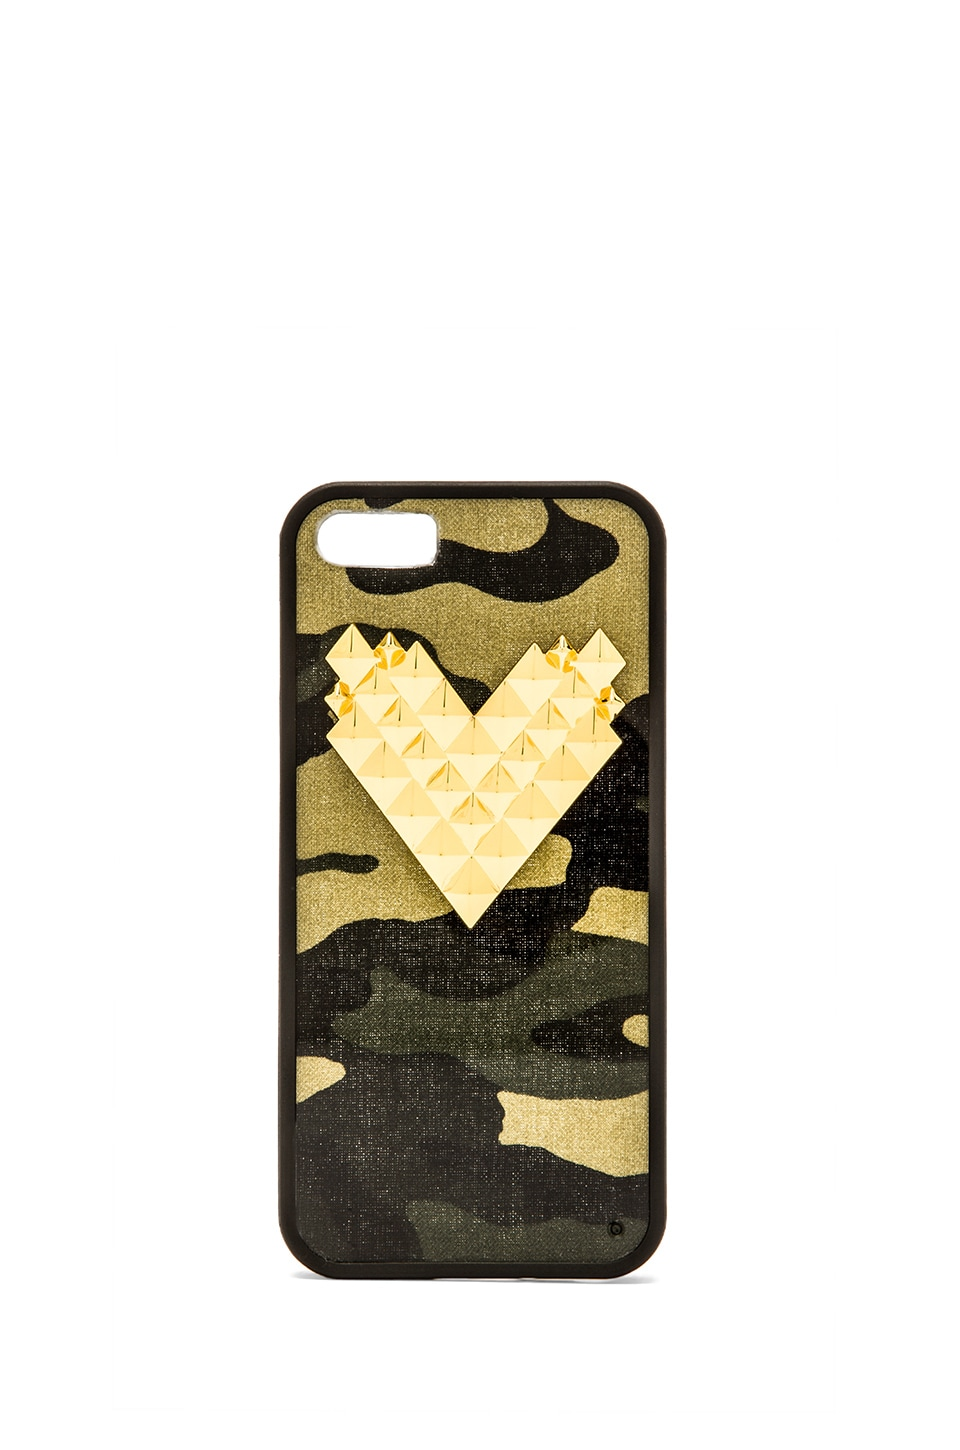 Wildflower Camo Iphone 5/5S Case in Gold Studded Heart